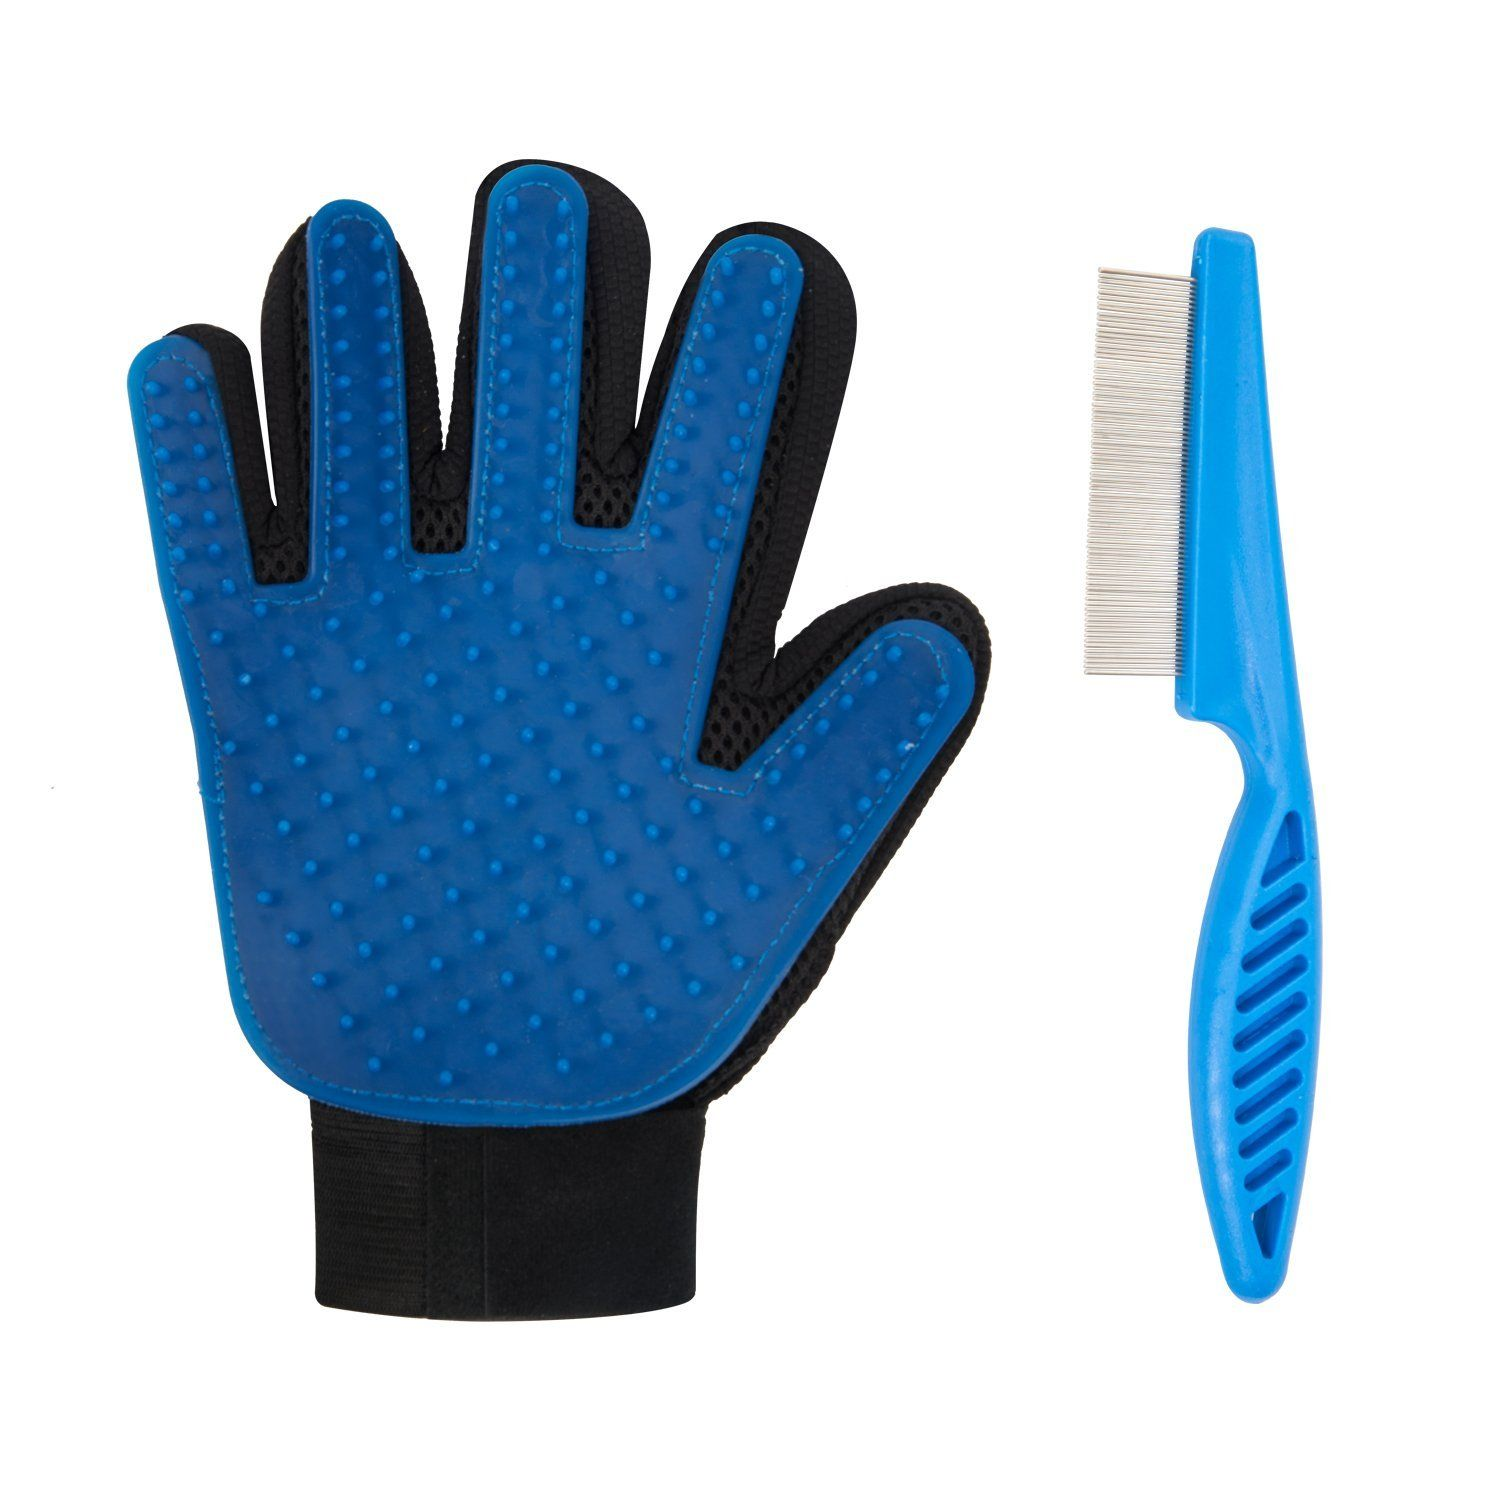 Elar Julie Pet Grooming And Clean Glove Which Used For Dogs Cats